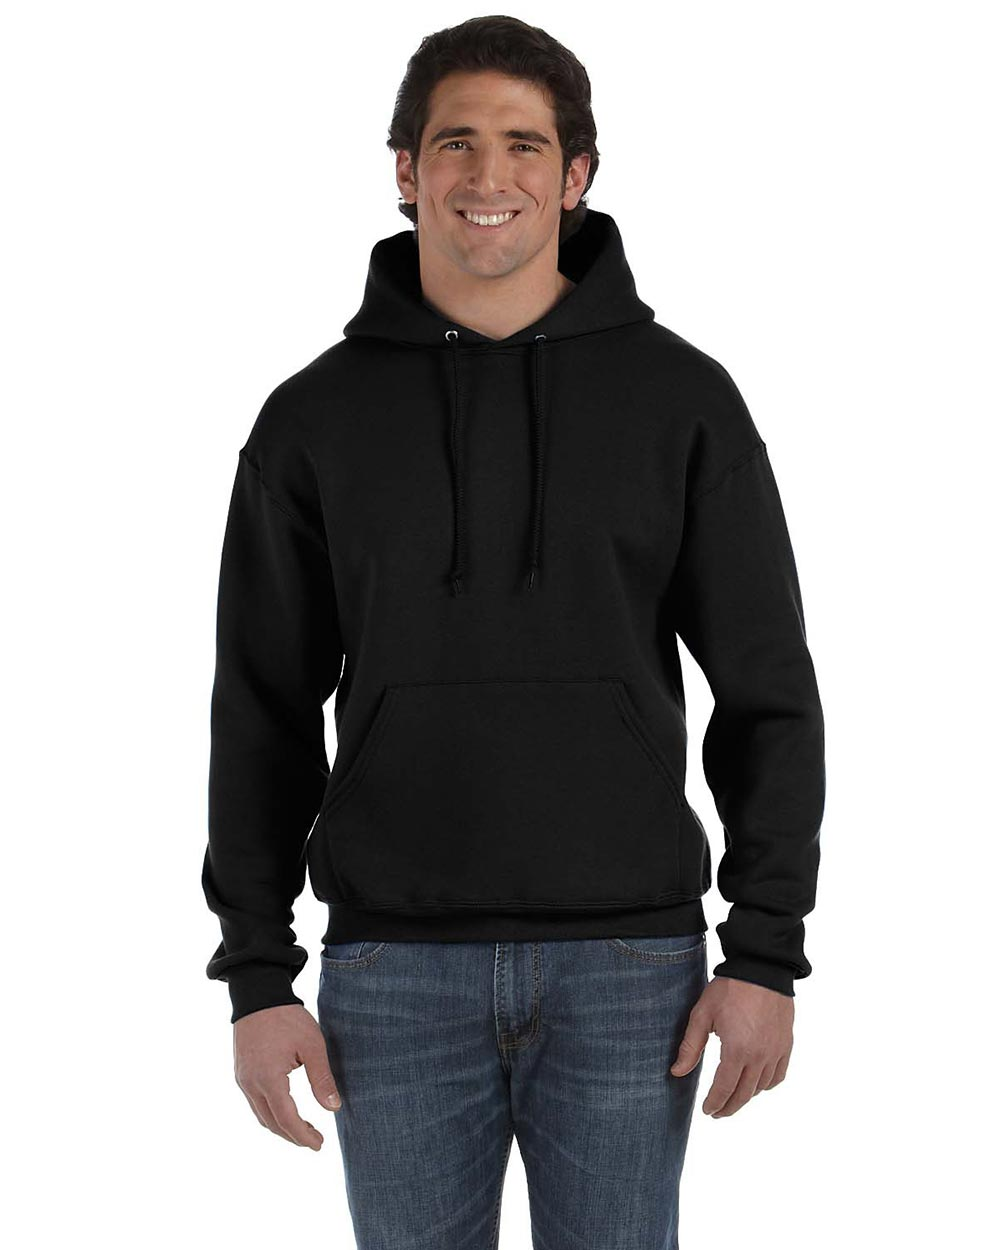 Fruit Of The Loom 82130 - Adult 20 oz Supercotton Pullover Hooded Sweatshirt